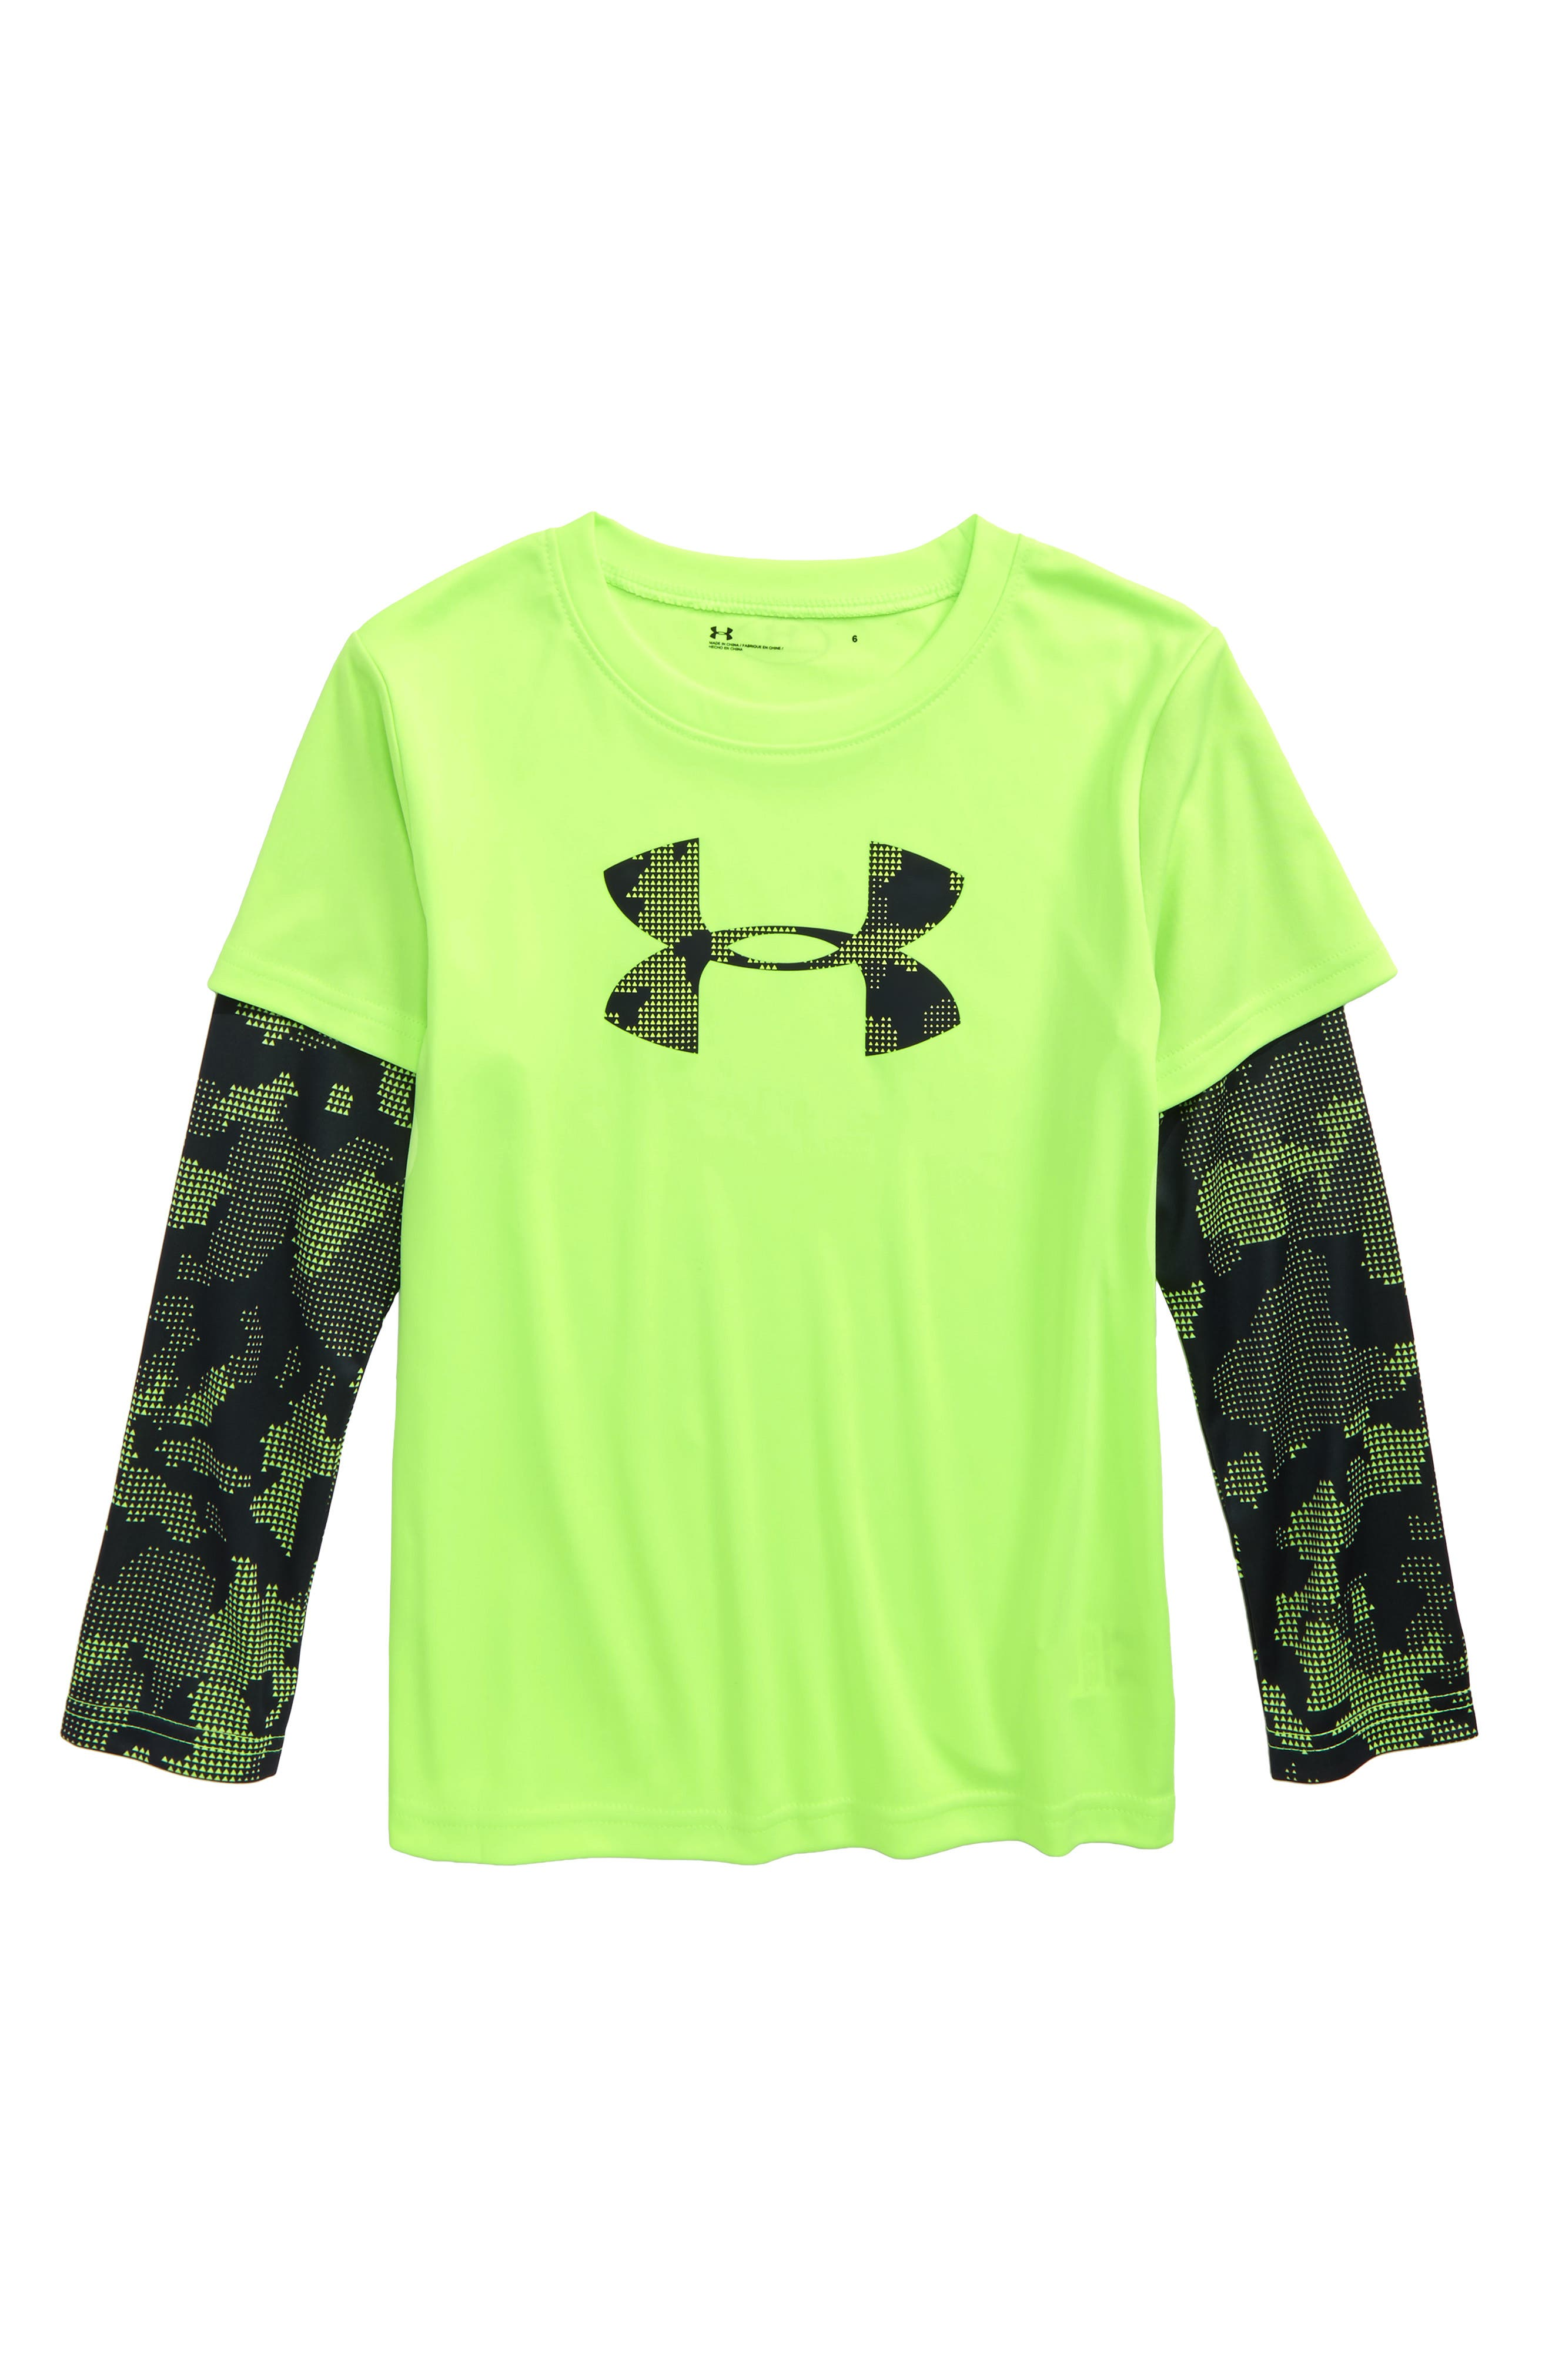 Alternate Image 1 Selected - Under Armour Utility Layered Long Sleeve T-Shirt (Toddler Boys & Little Boys)